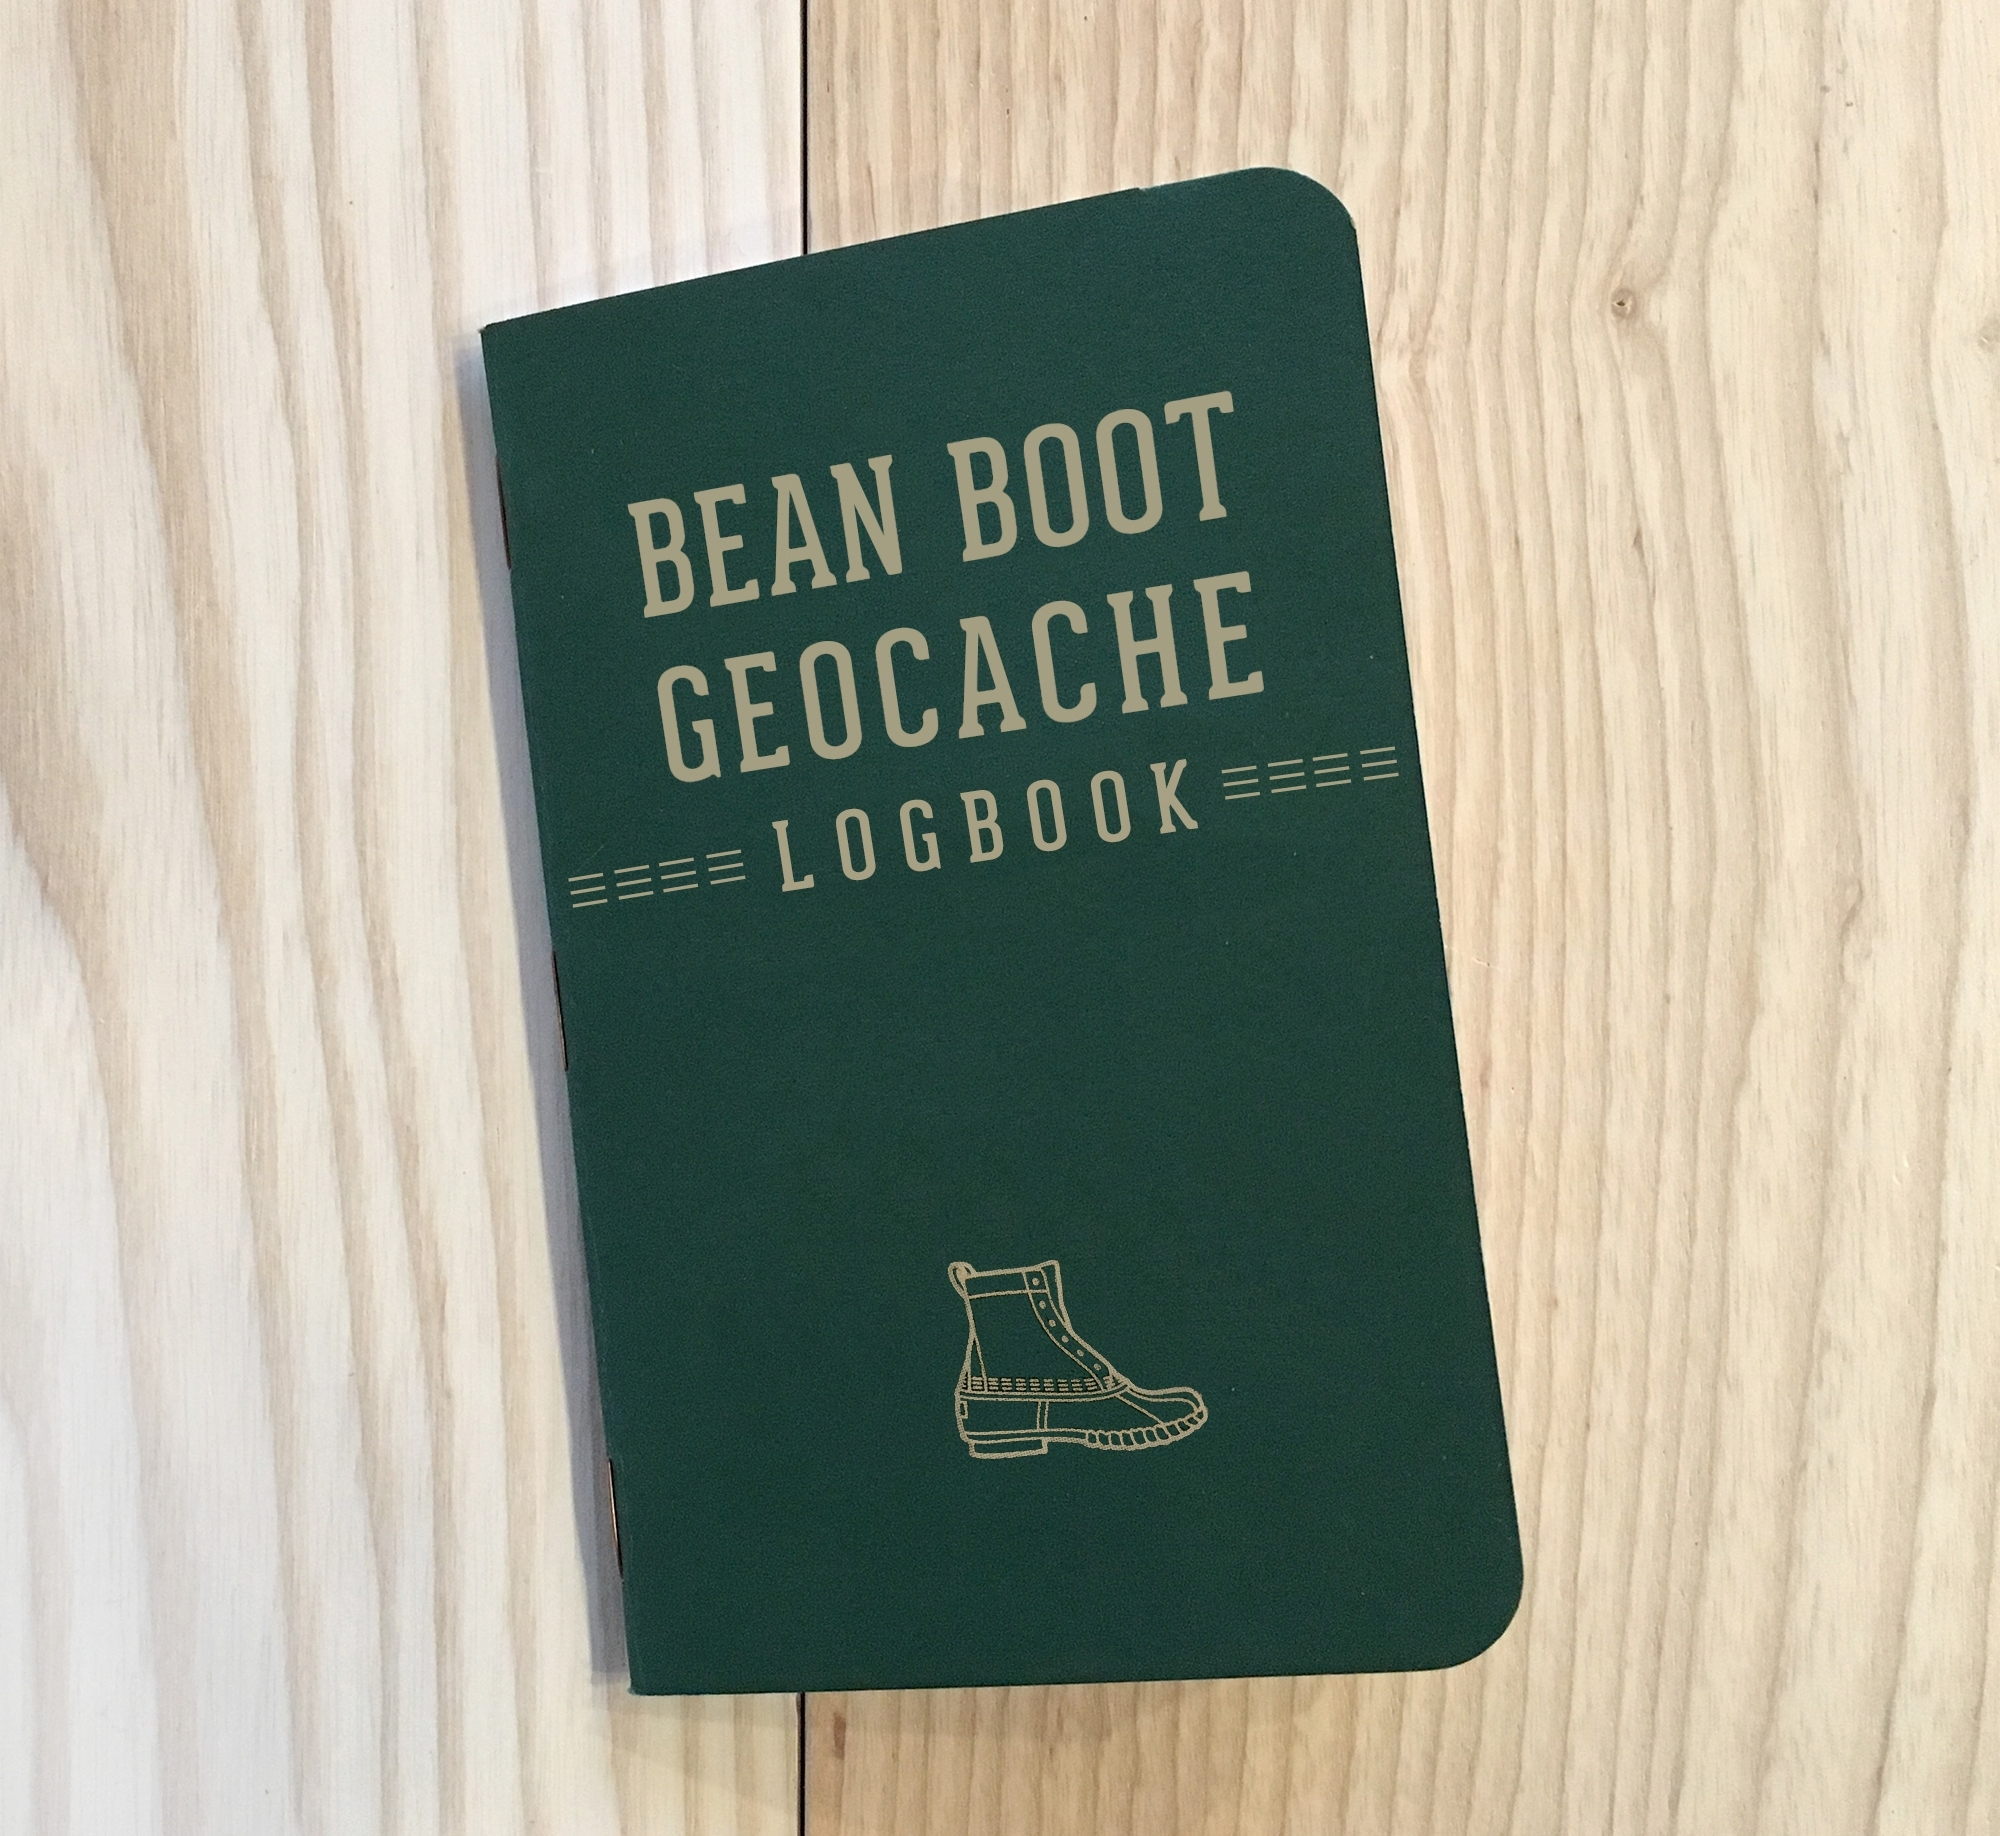 Keep track of the distance that your Bean Boots have traveled with the geocache logbook.